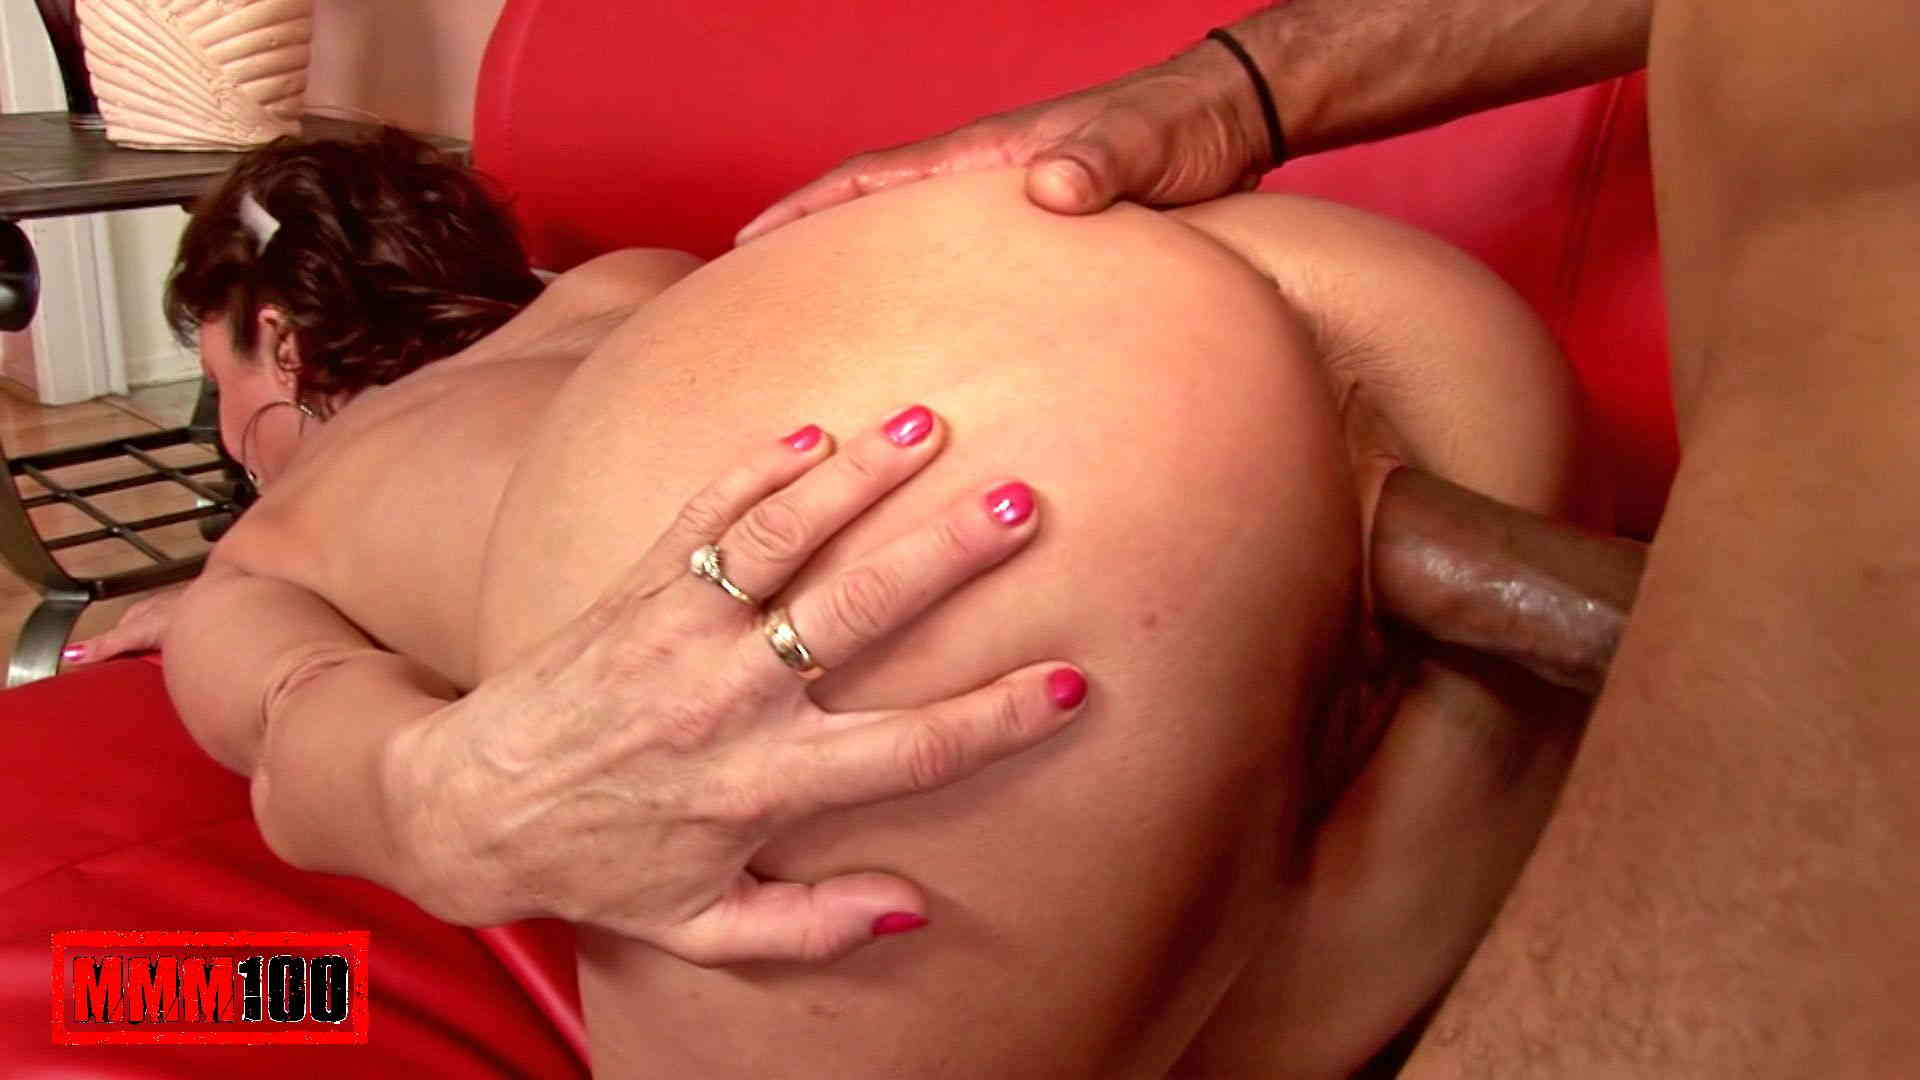 And Black cock creampie milf much